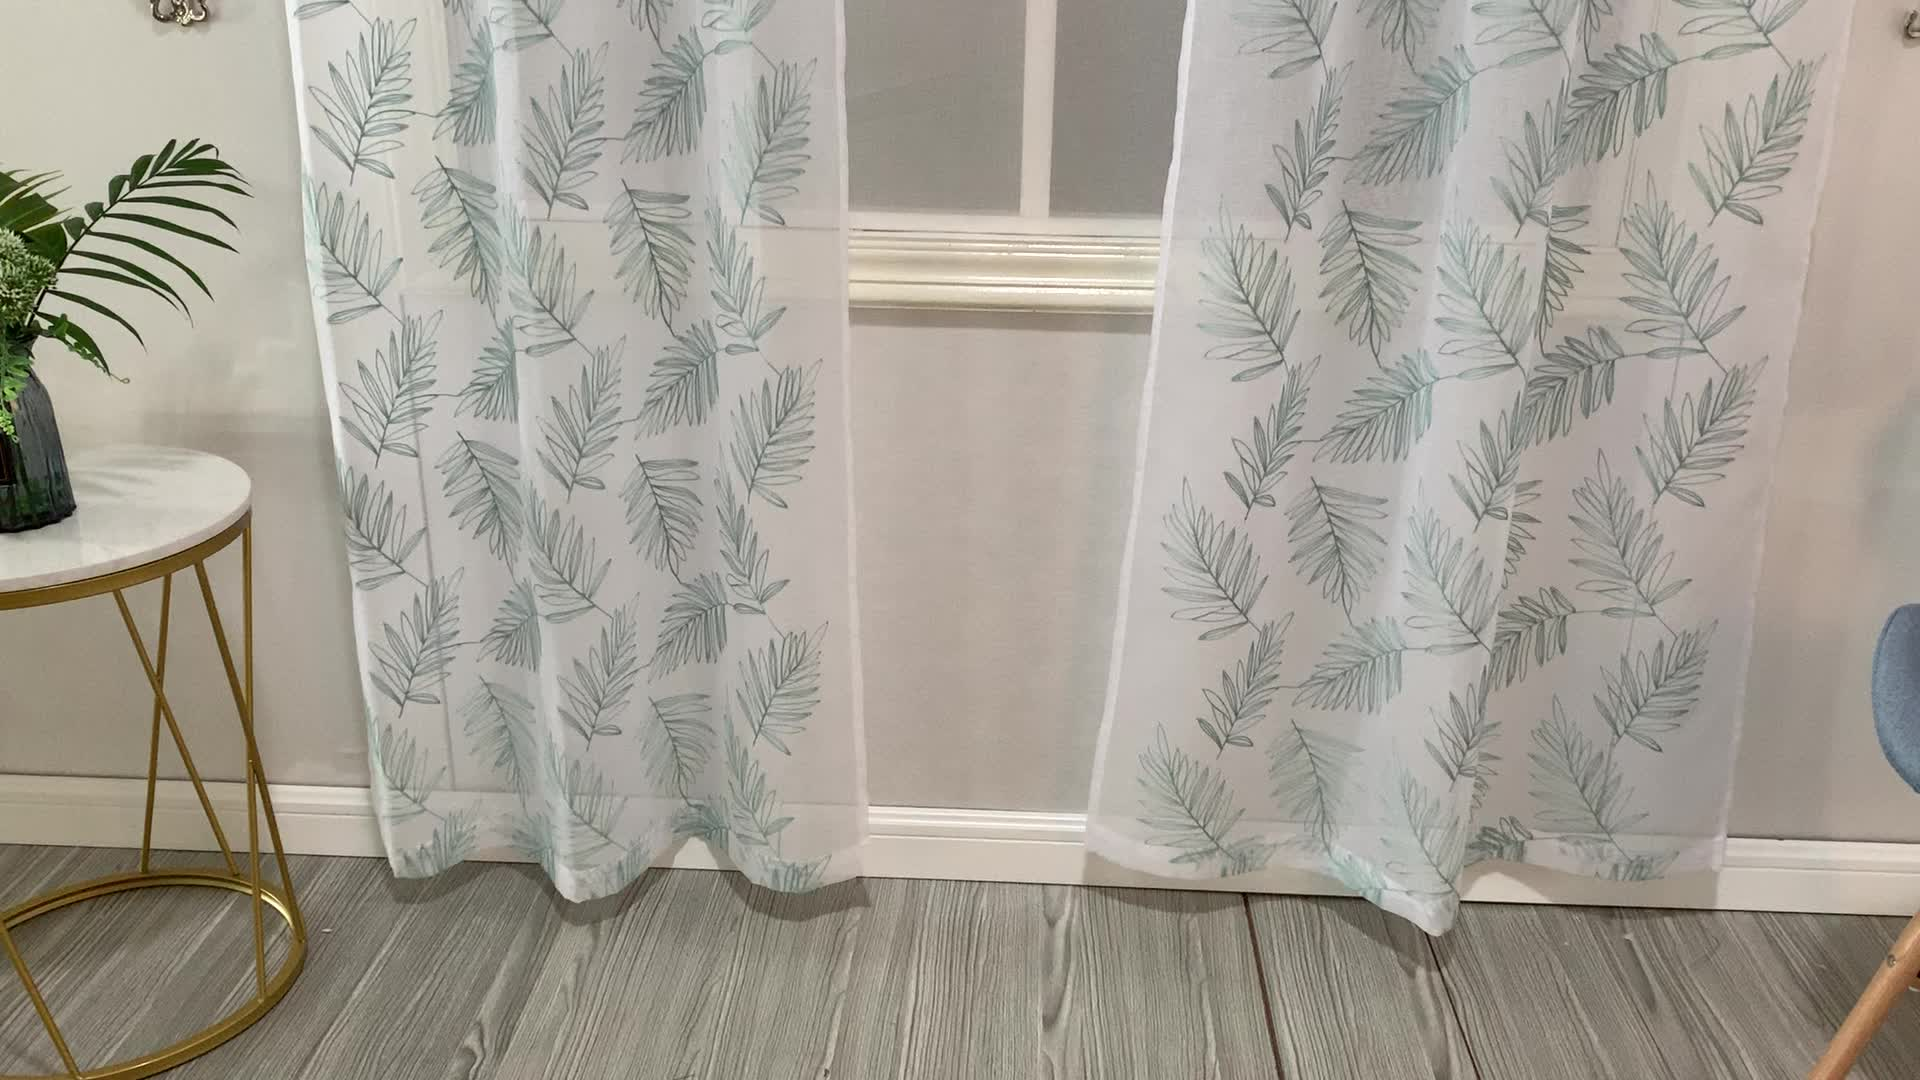 American style blue tropical bahamas leaf embroidery summer beach feel window drapes